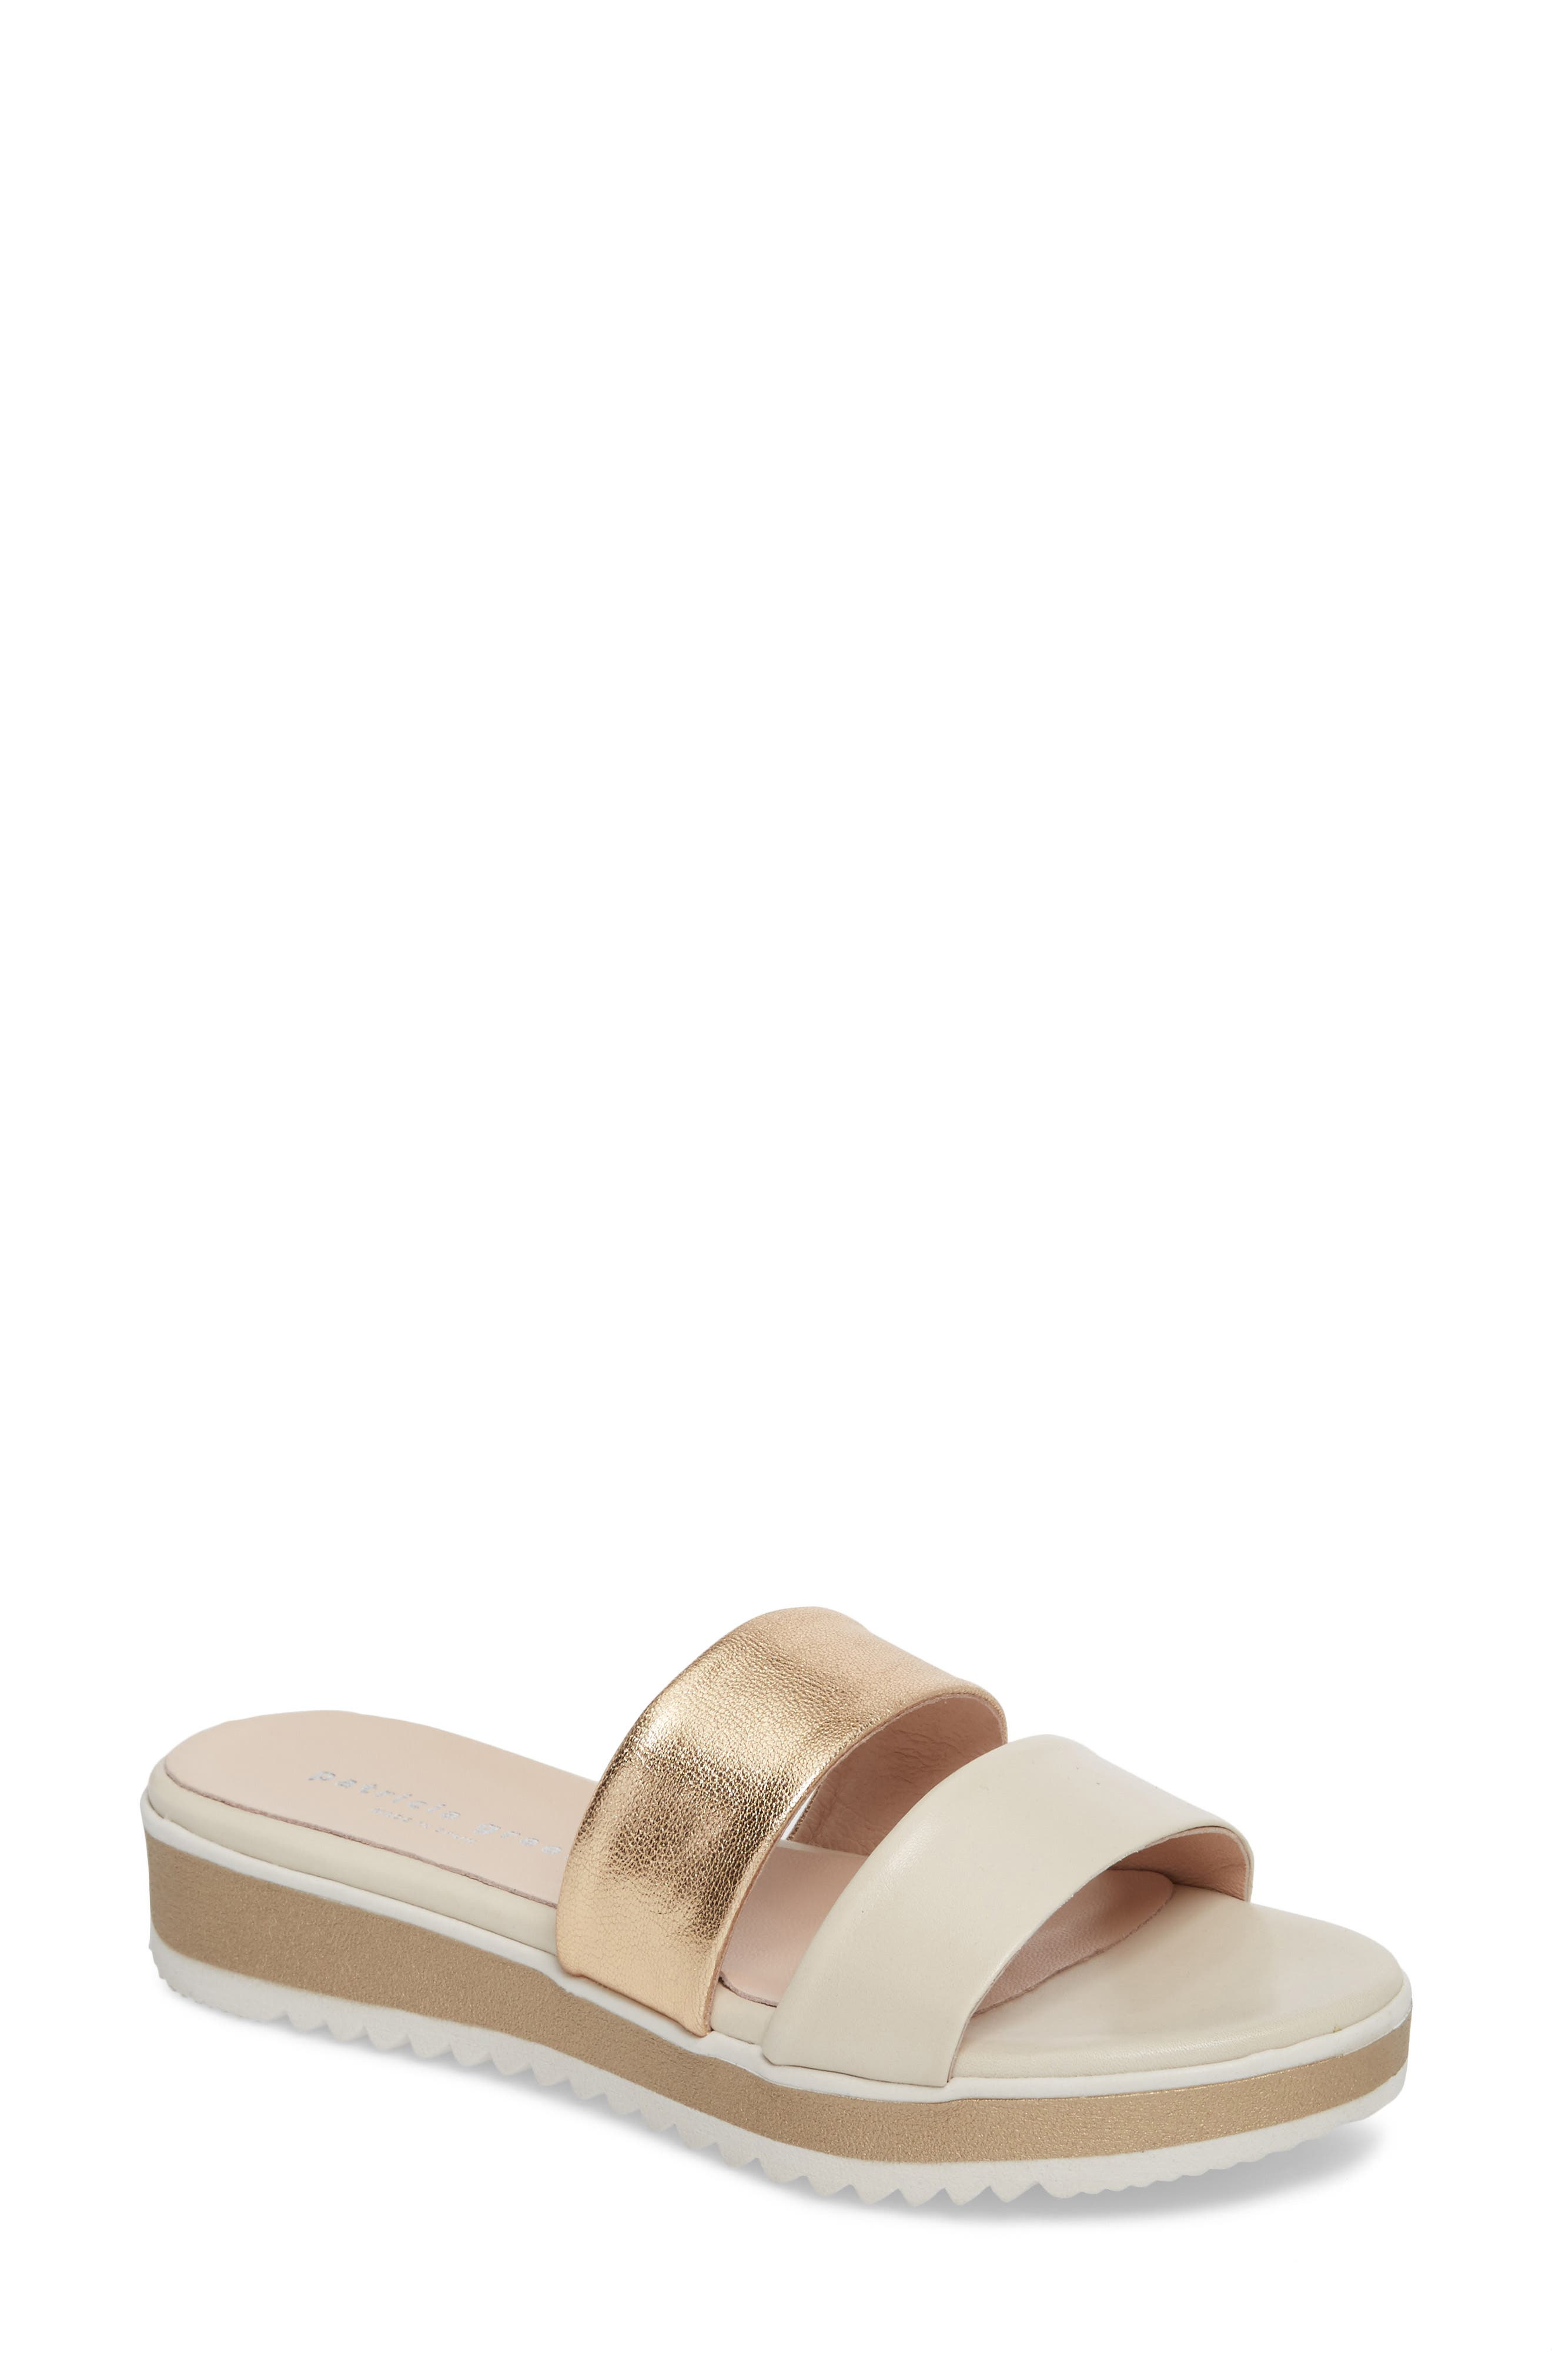 Bailey Slide Sandal,                             Main thumbnail 1, color,                             SAND LEATHER